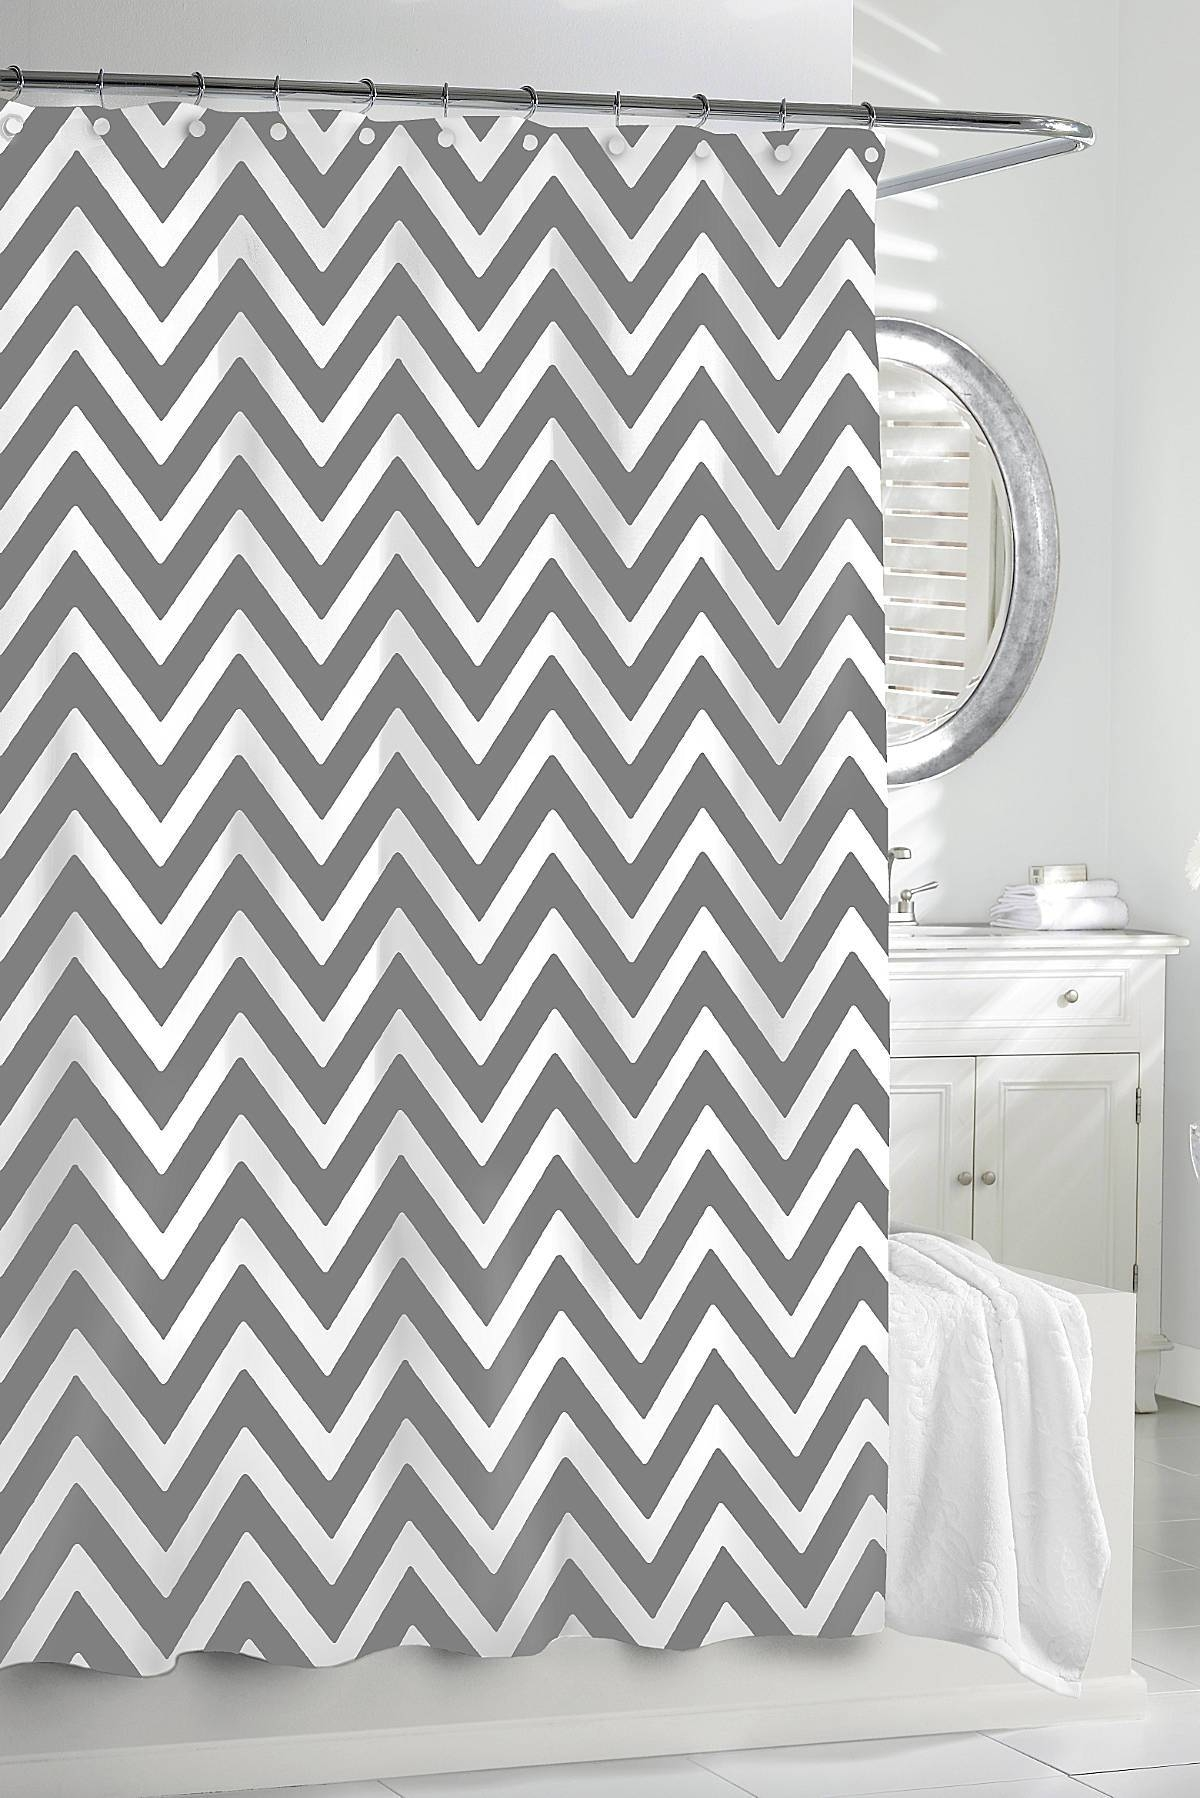 Gracious Home Shower Curtain With Regard To Gray Chevron Shower Curtains (View 6 of 25)